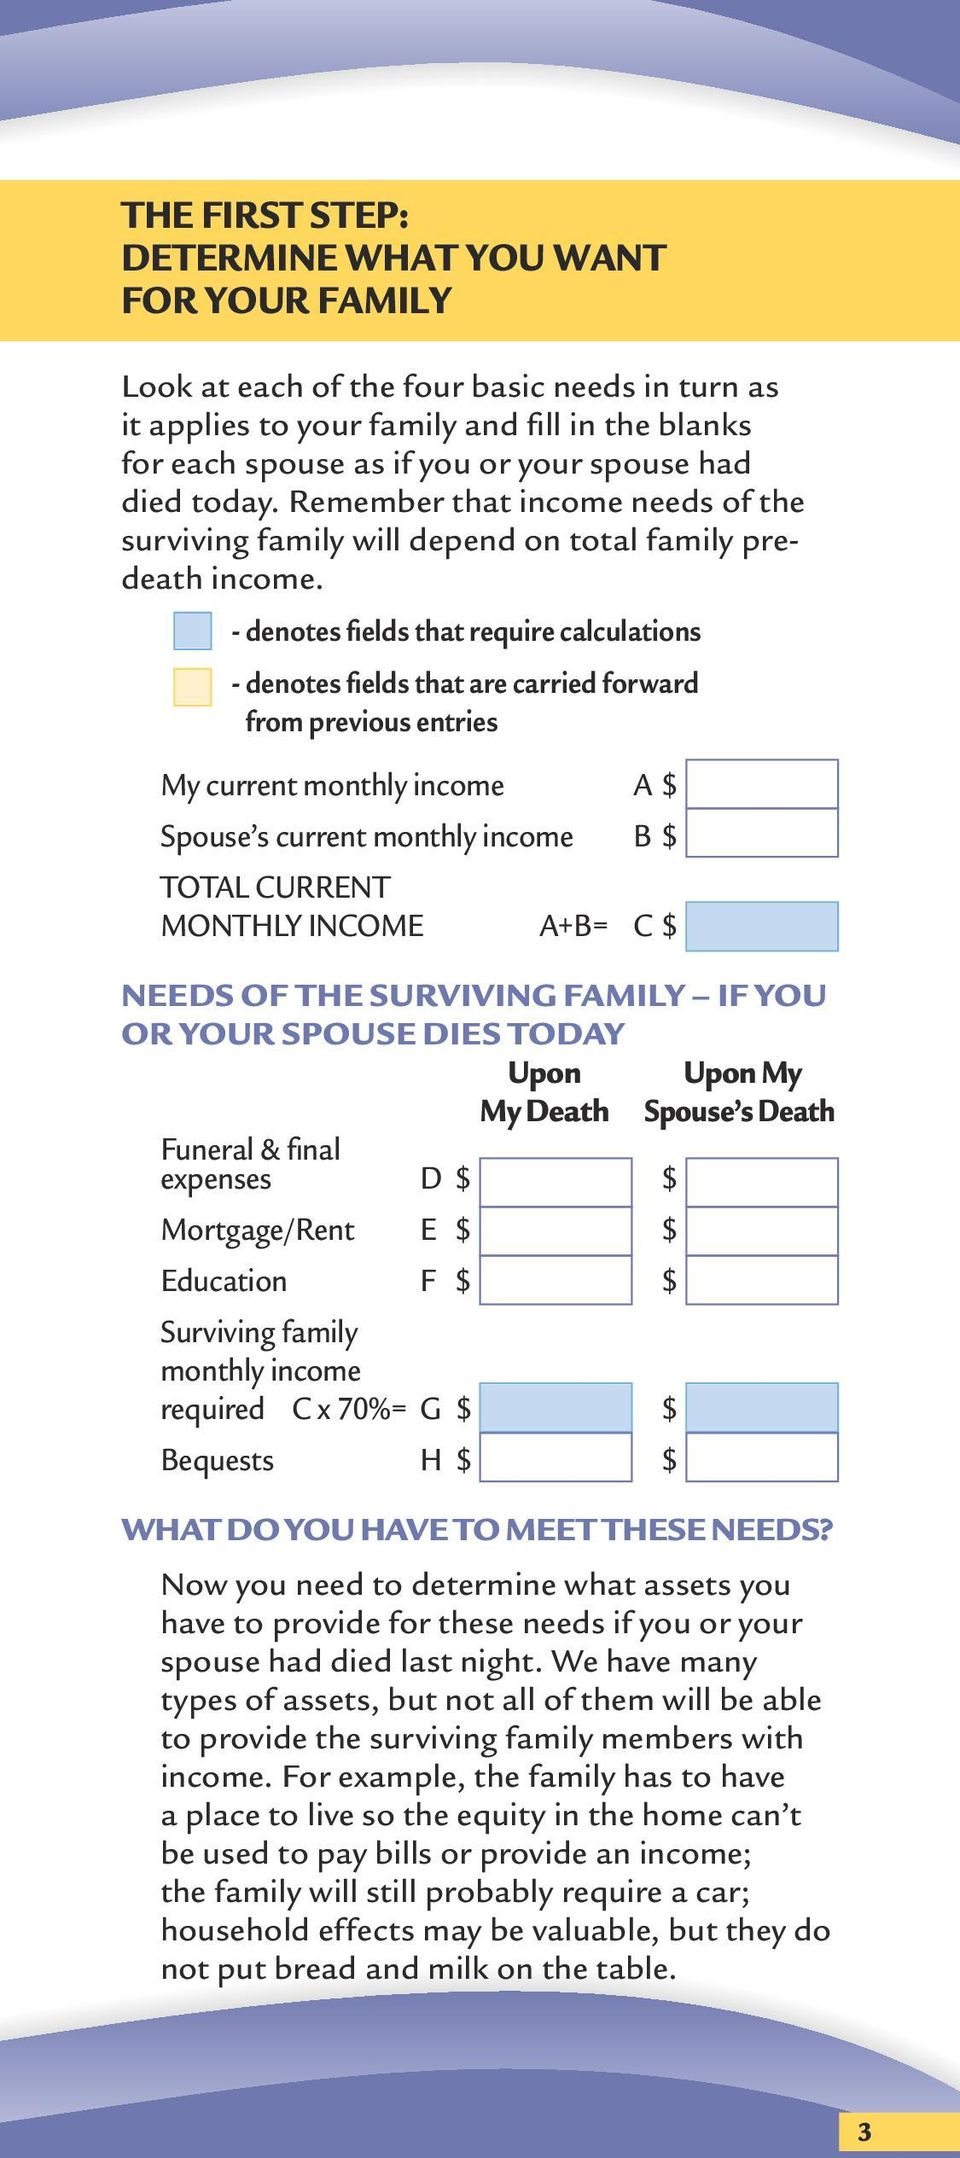 - denotes fields that require calculations - denotes fields that are carried forward from previous entries My current monthly income A $ Spouse s current monthly income B $ TOTAL CURRENT MONTHLY